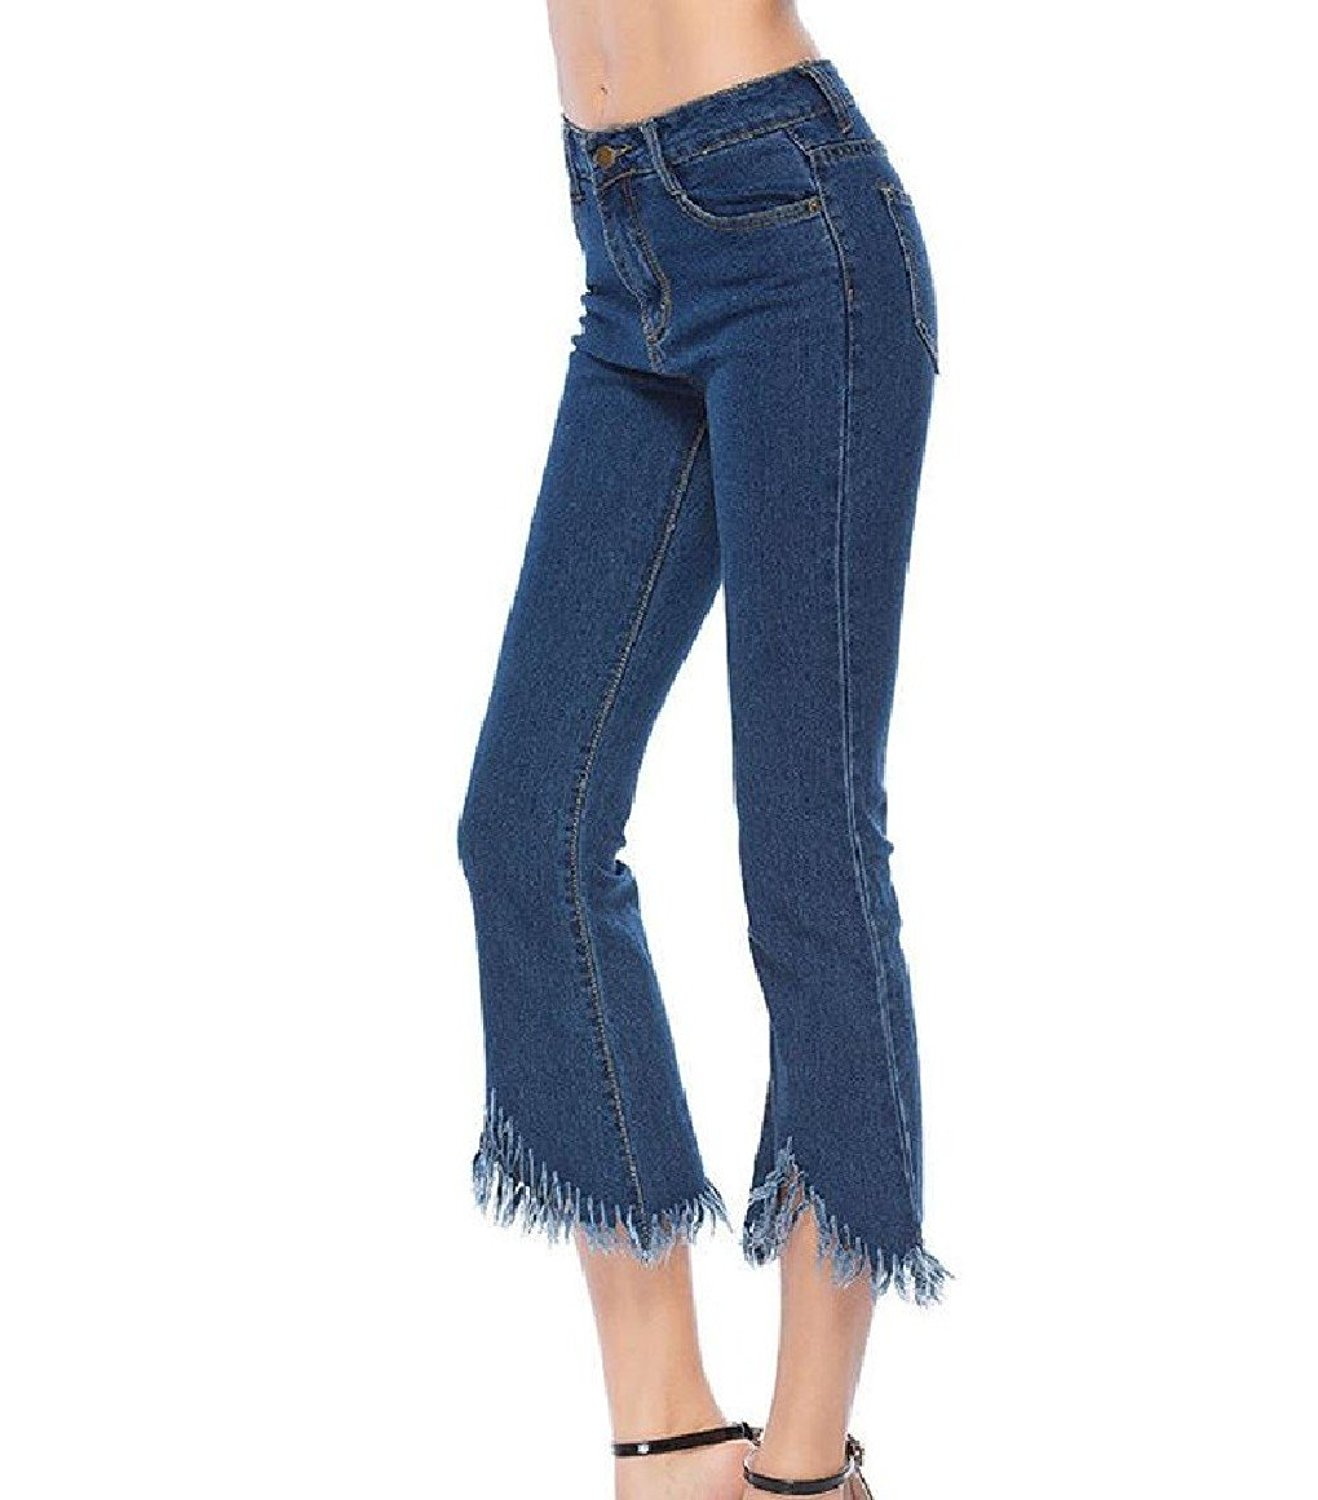 881b6e9532b0 Get Quotations · Abetteric Womens Flare Macrame Stretchy Regular-Fit Ladies  Skinny-Fit Jeans Leggings